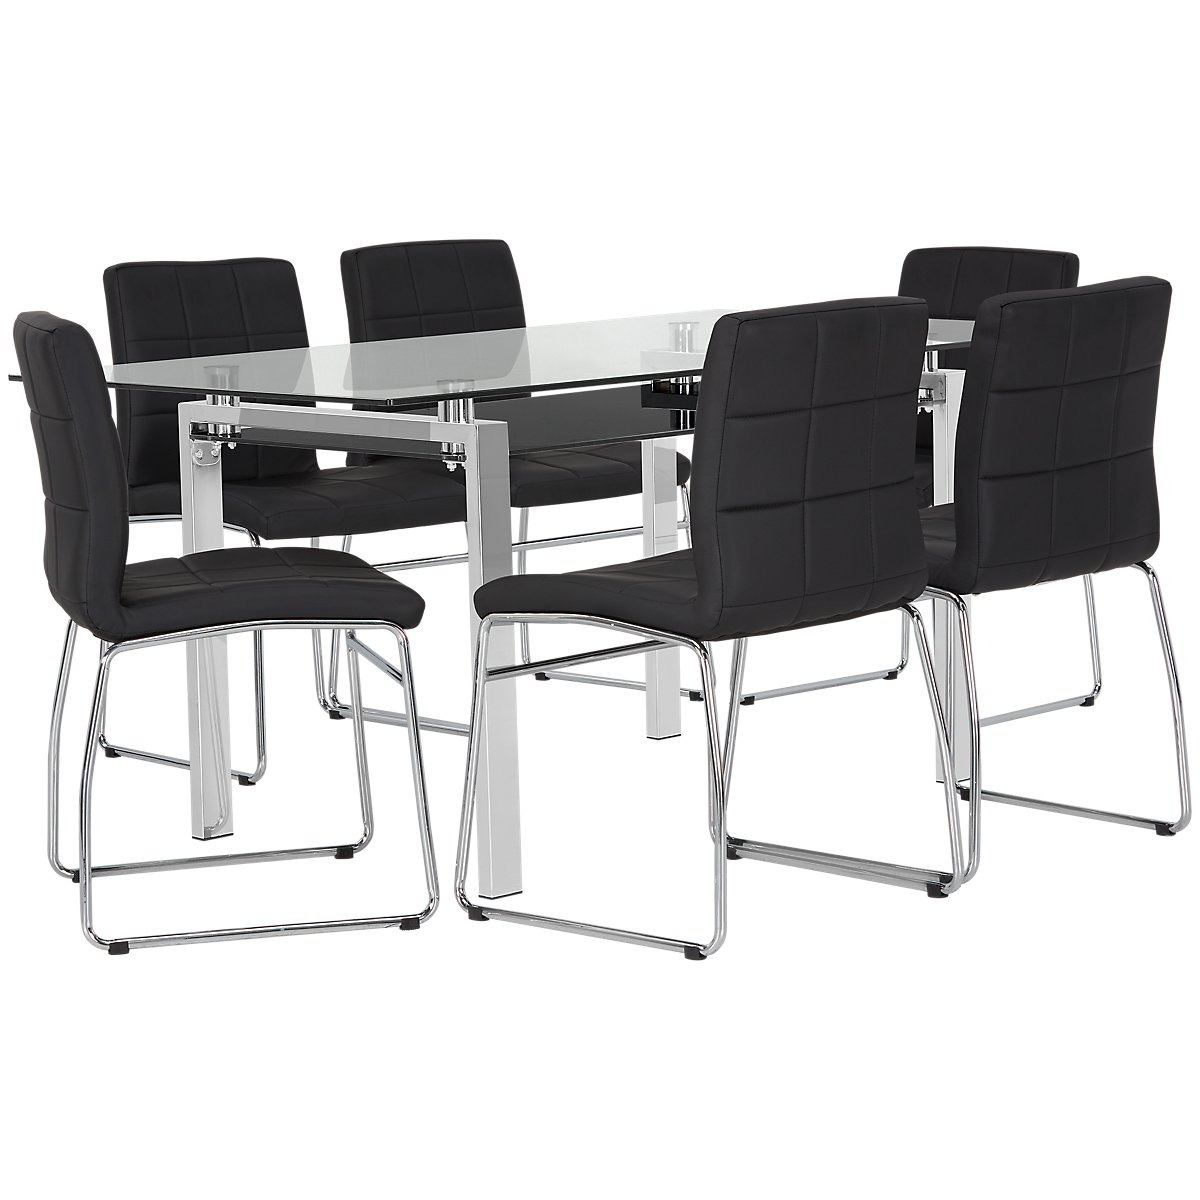 "Caleb Black 60"" Table & 4 Upholstered Chairs"